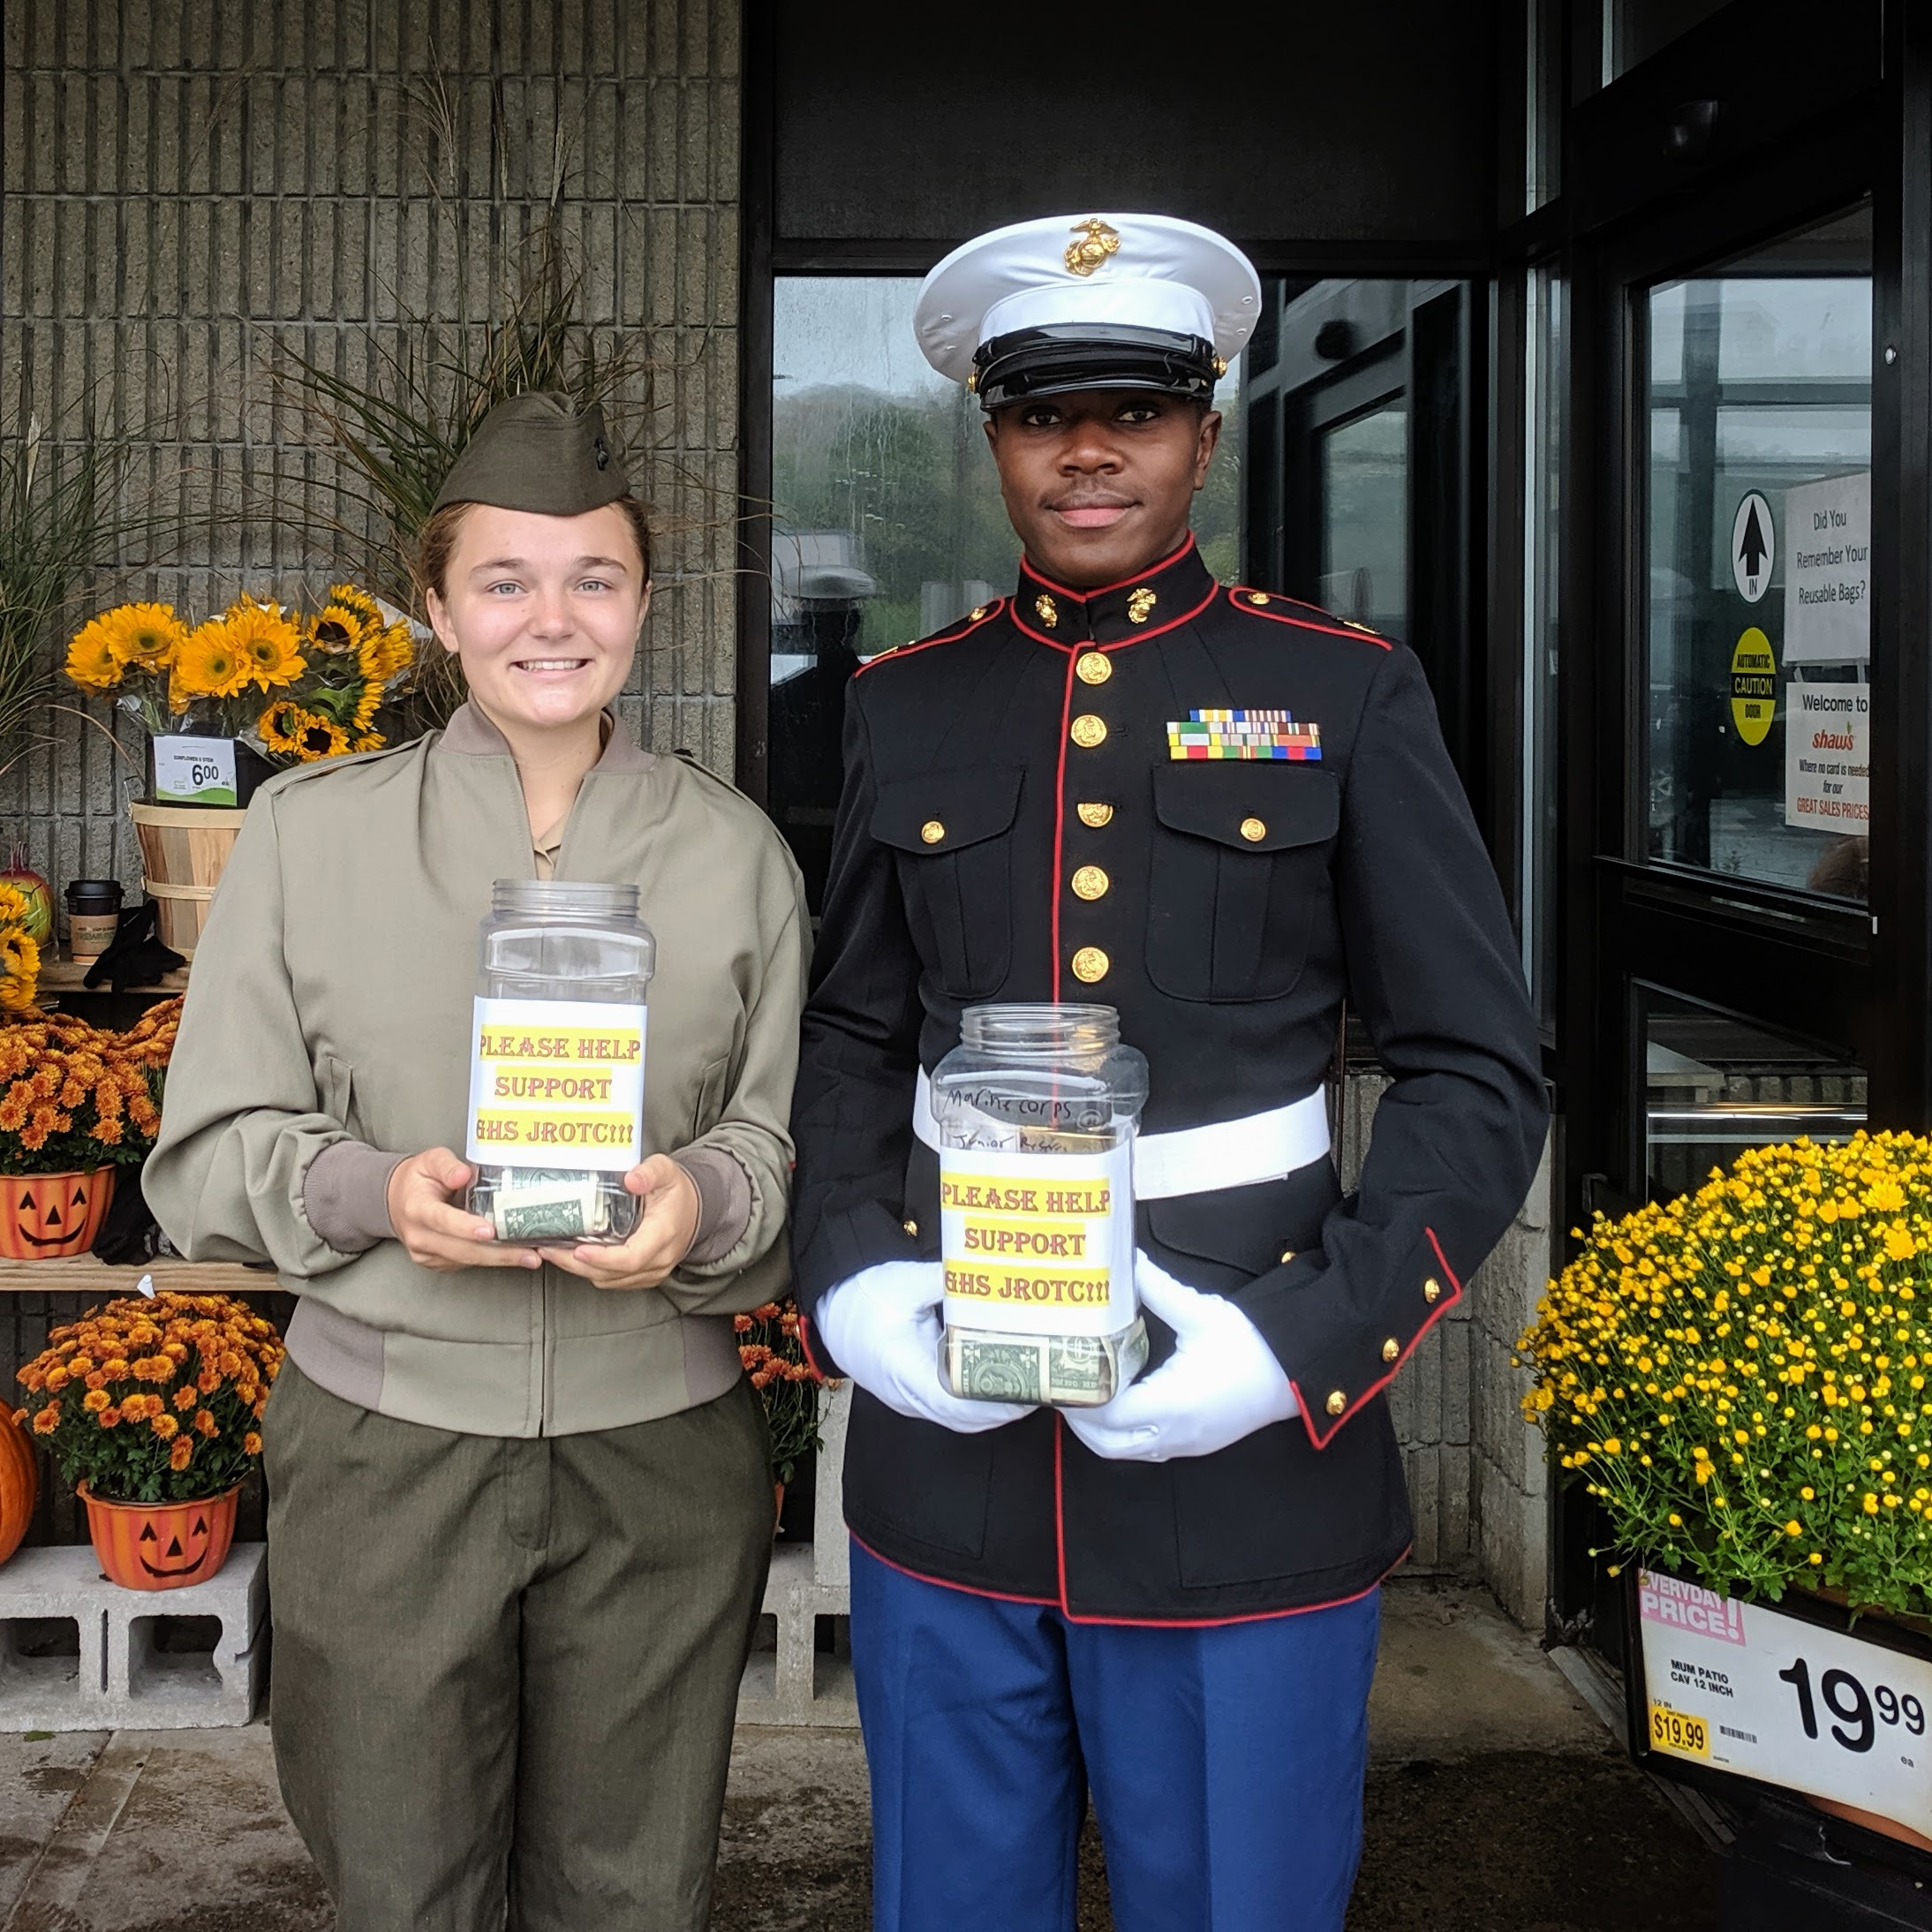 Willow _Emmanuel_GHS JROTC cadets fundraising and community outreach _ Shaws Eastern Avenue Gloucester MA_20191012 © c ryan.jpg